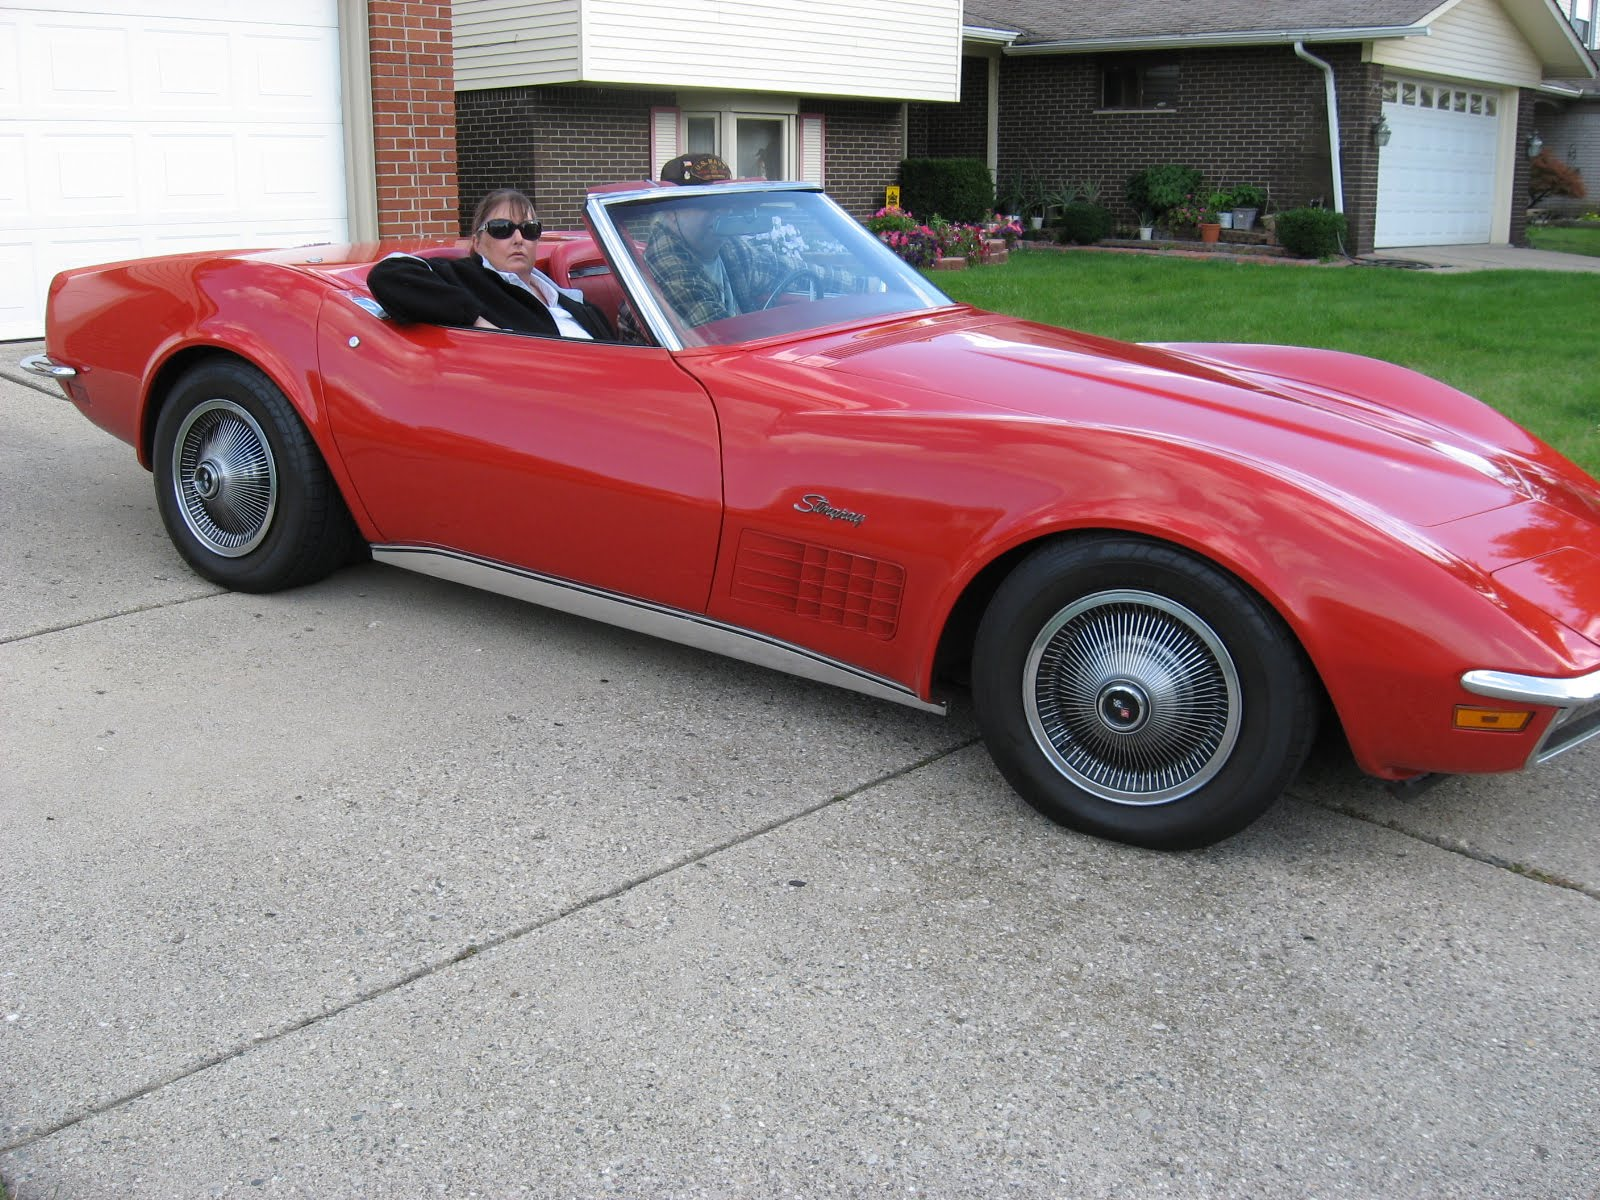 north texas bikers iii 1970 corvette stingray for sale 10 17 2011. Black Bedroom Furniture Sets. Home Design Ideas